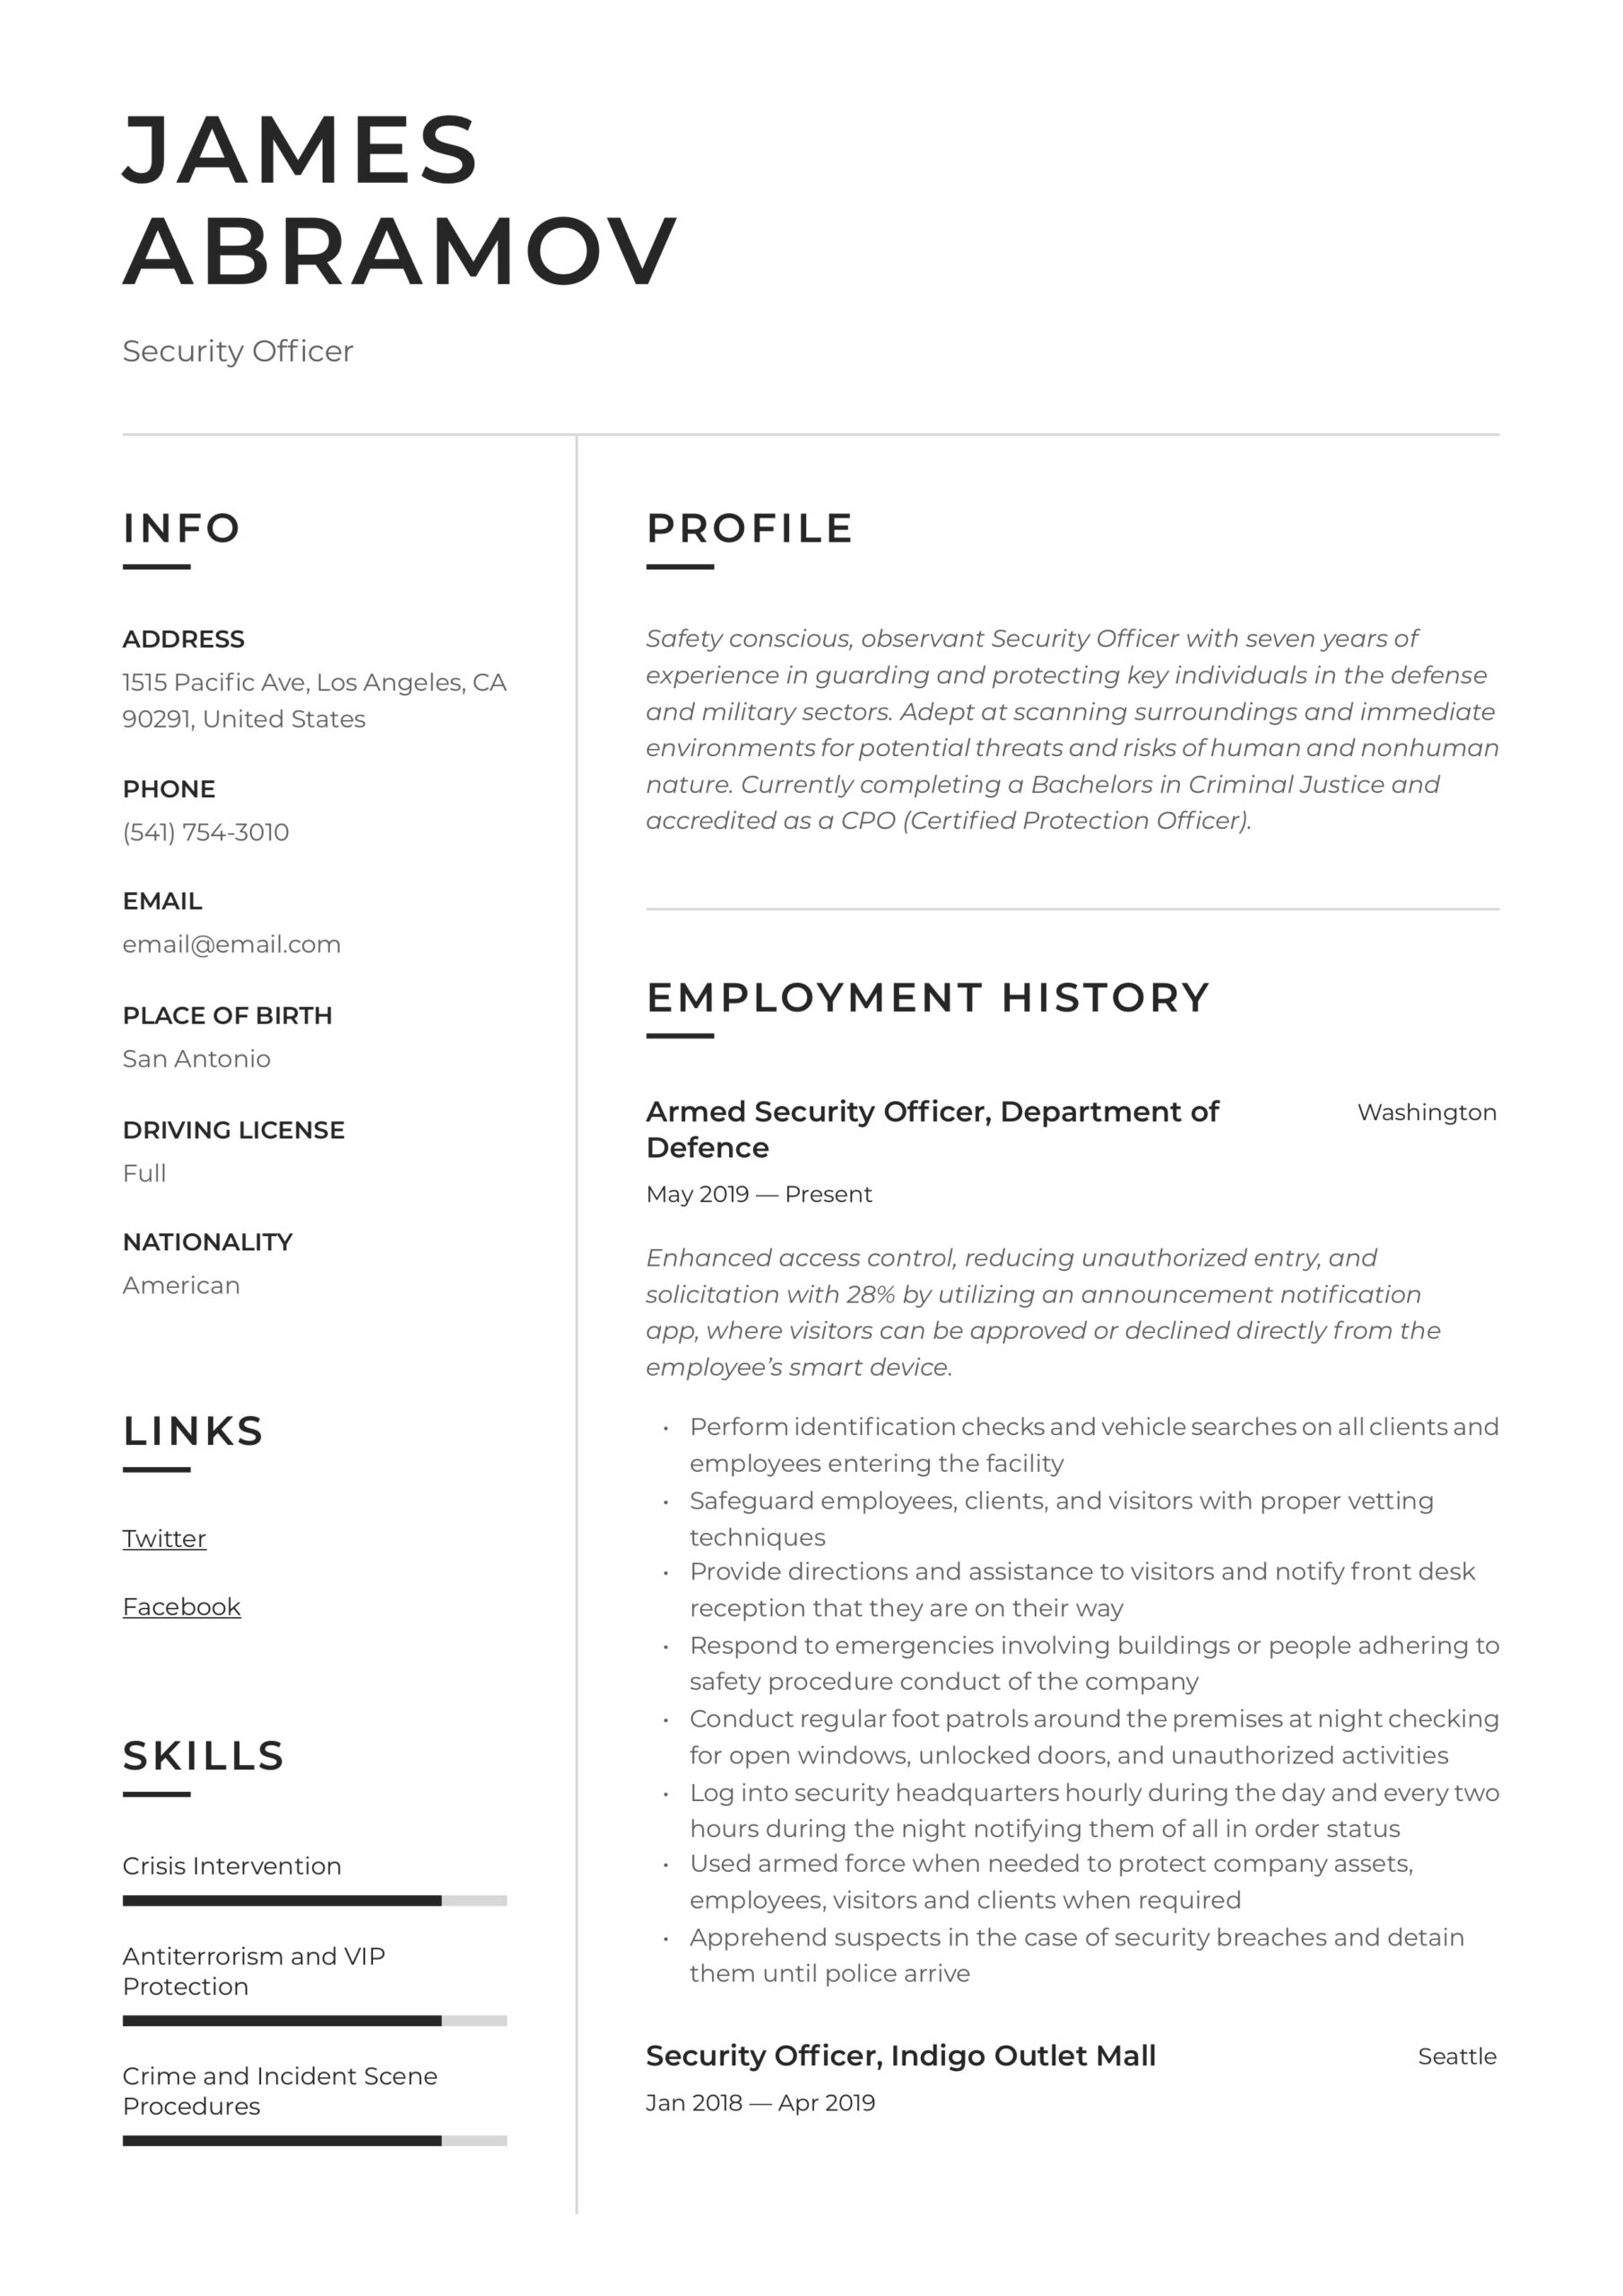 security officer resume writing guide examples armed job description for donor relations Resume Armed Security Officer Job Description For Resume